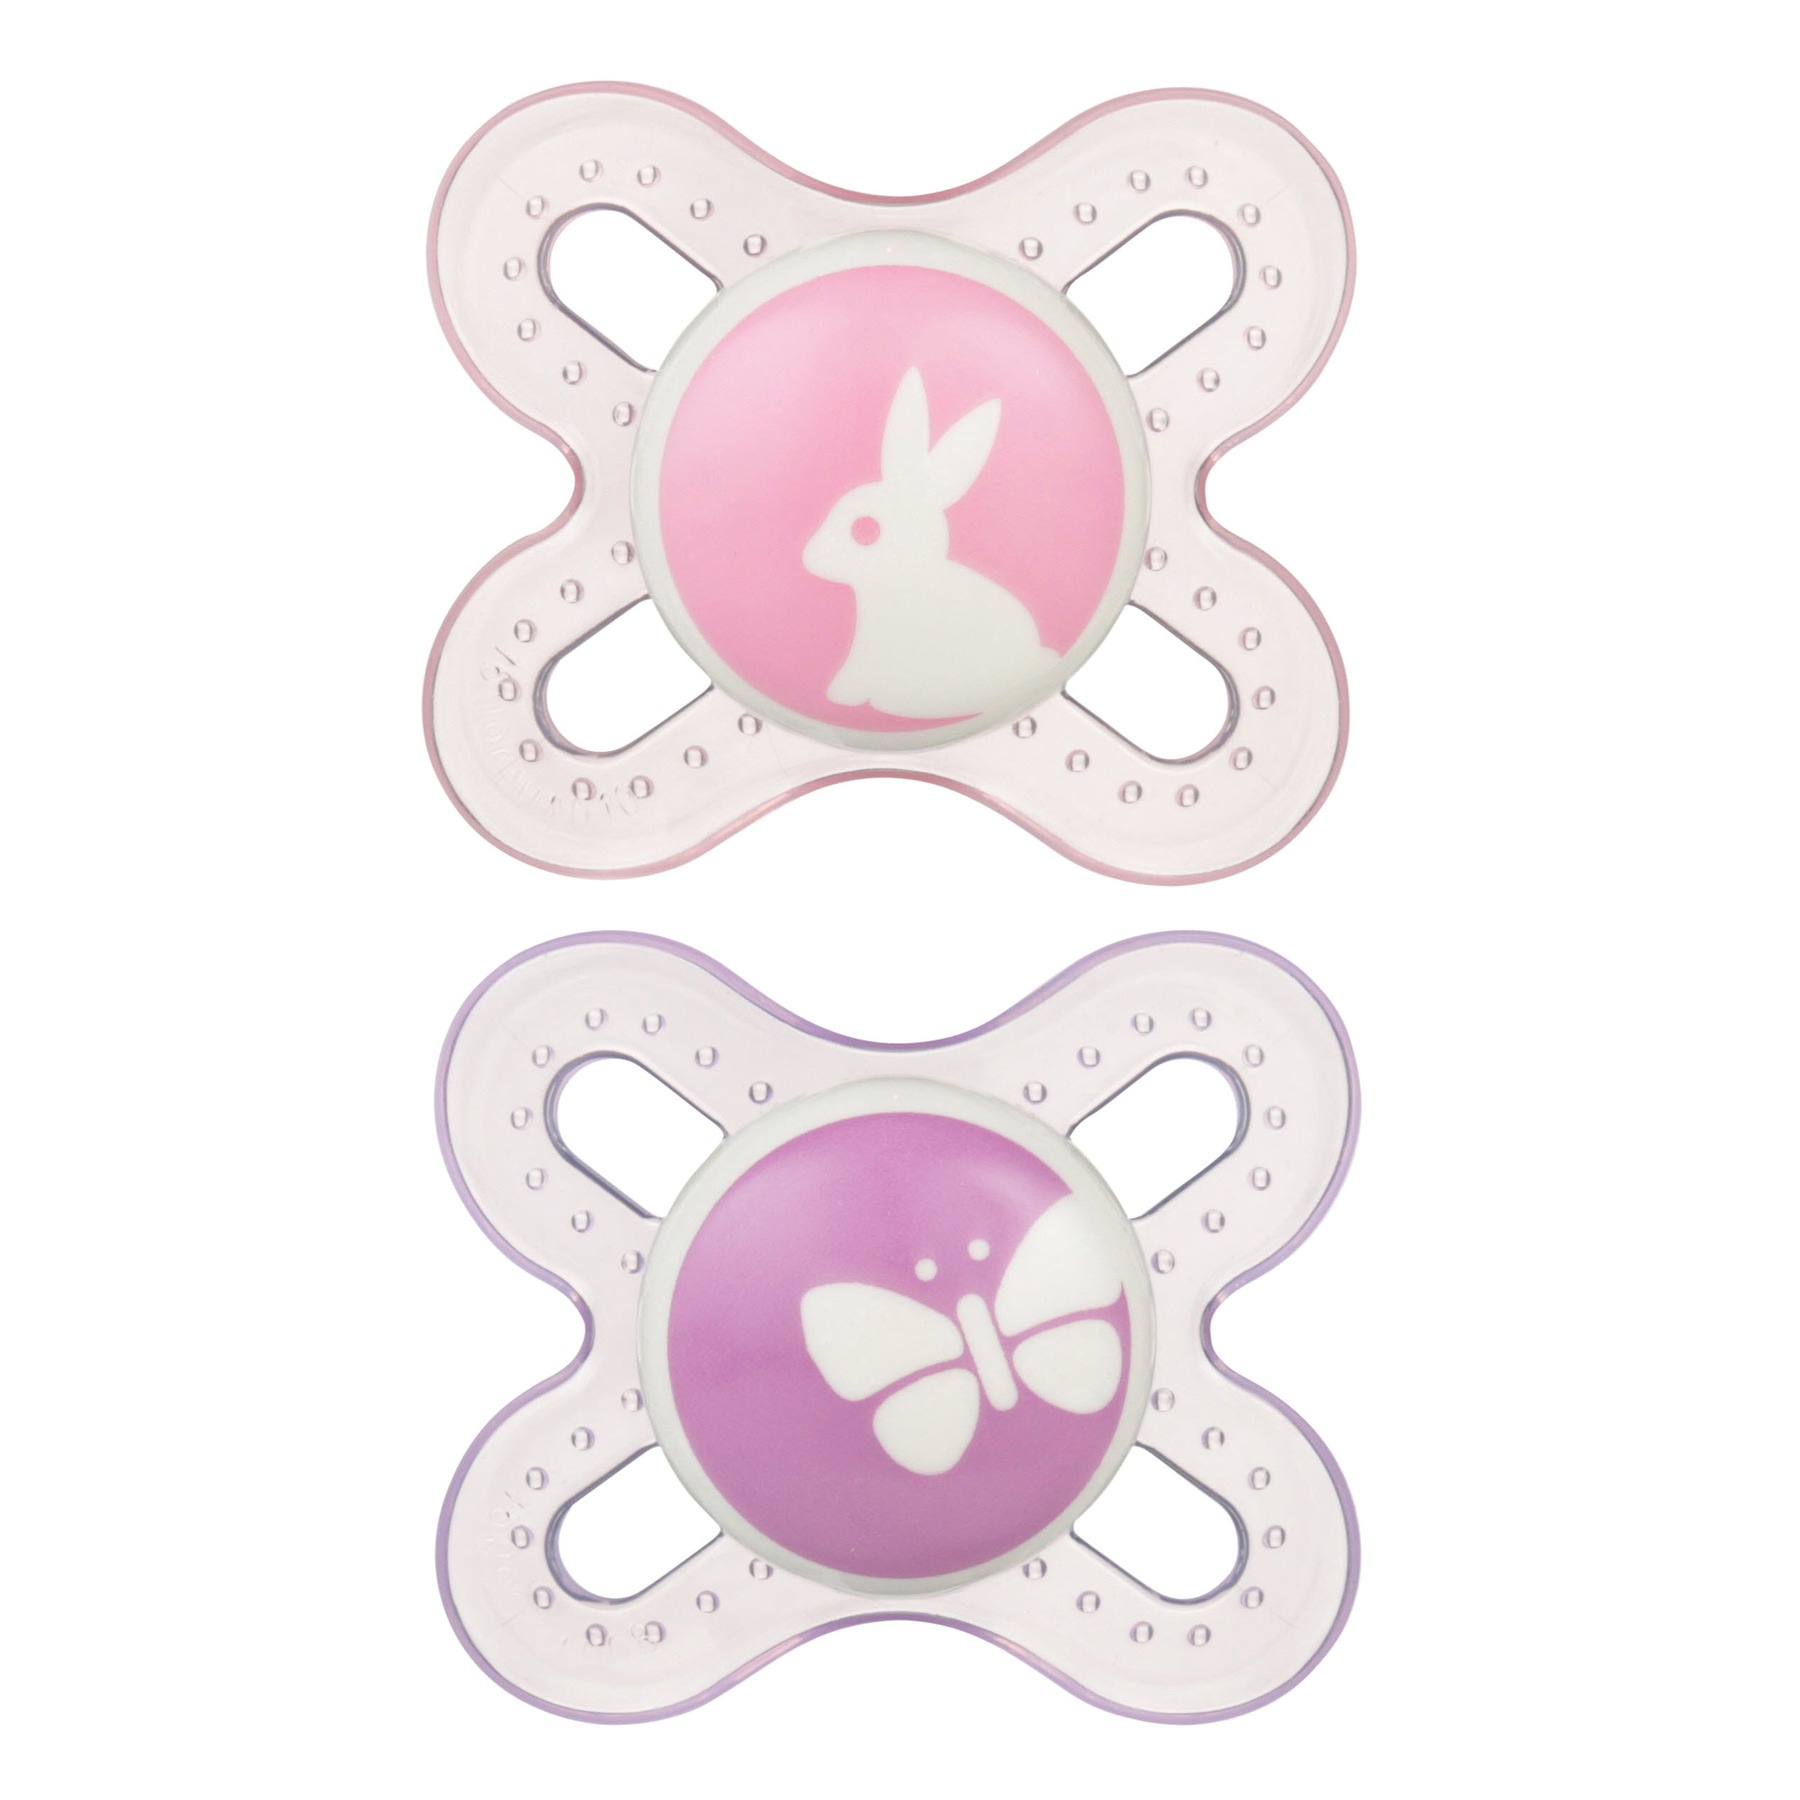 MAM Start Collection Newborn Pacifiers, 0+ Months - 2 Counts